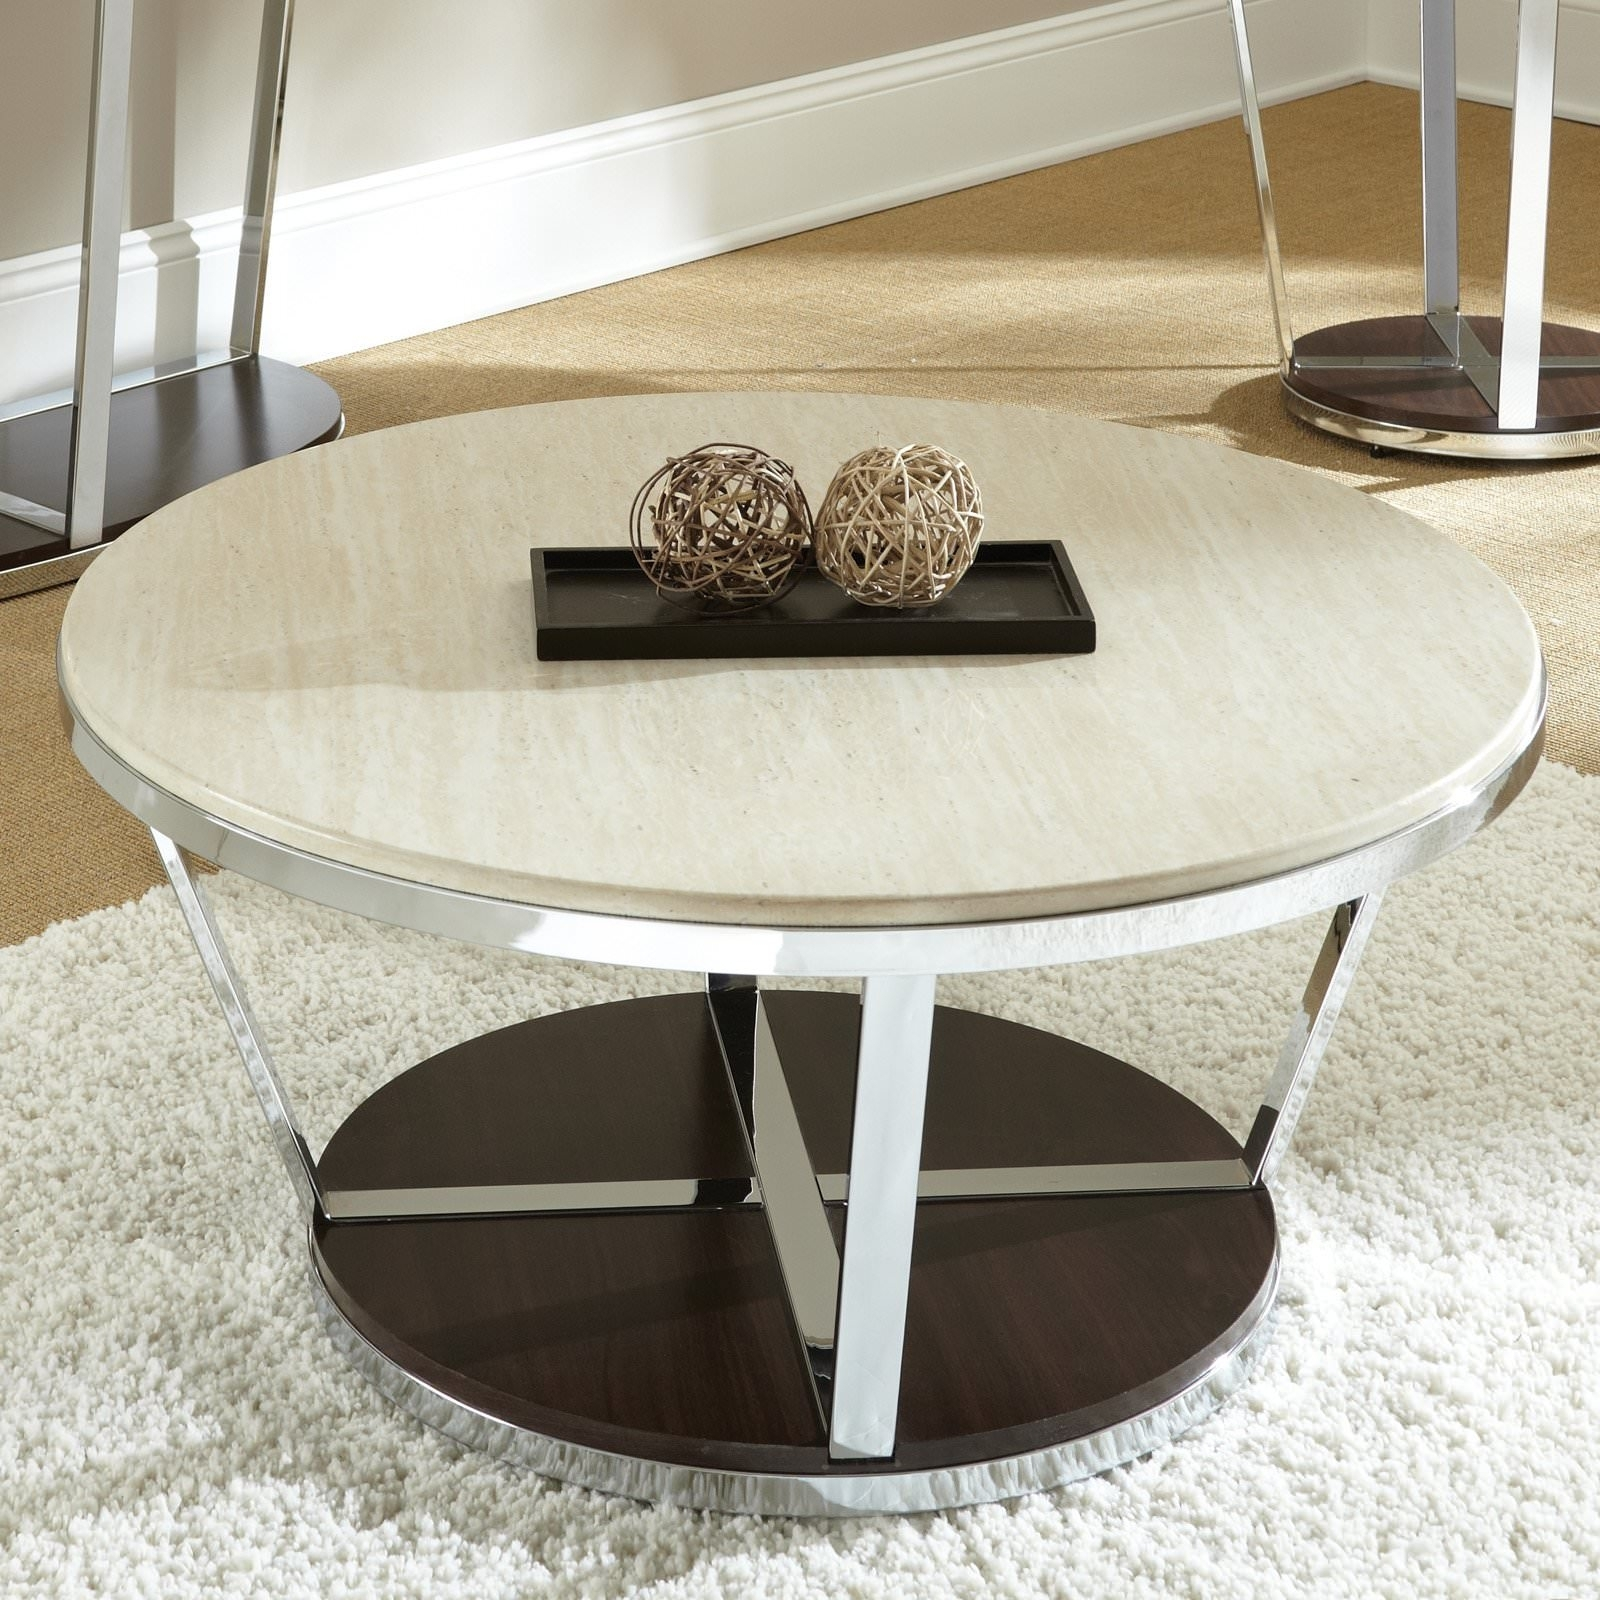 Round Faux Marble Coffee Table — Sushi Ichimura Decor : Stylish Faux Pertaining To Jackson Marble Side Tables (Image 20 of 30)